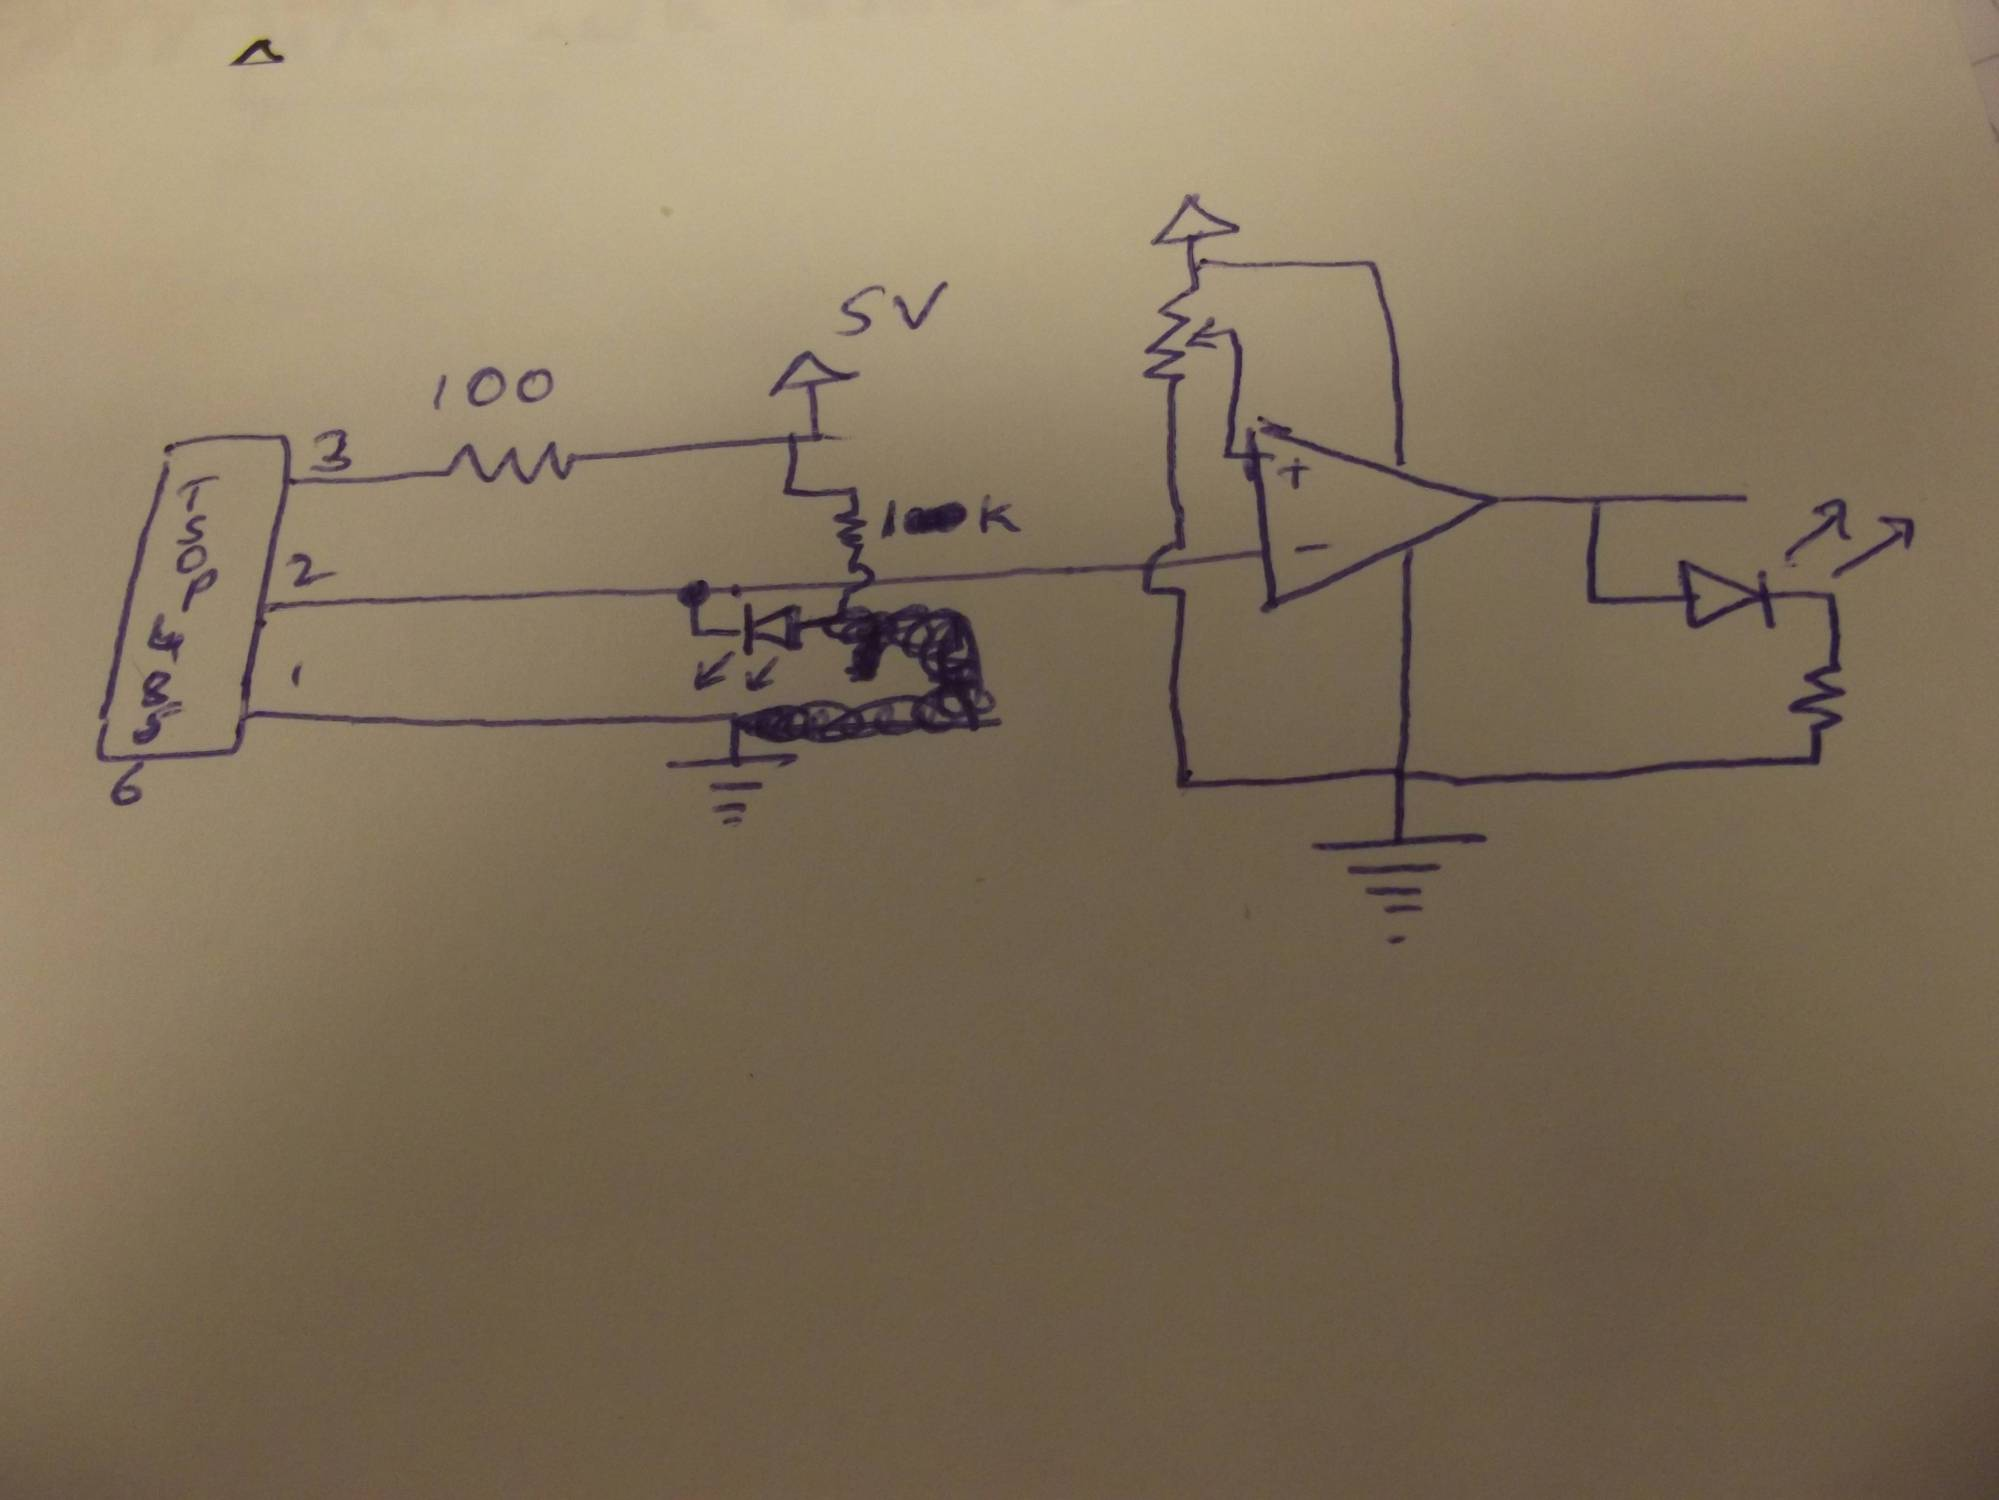 hight resolution of schematic 2 infrared ir proximity sensor electrical